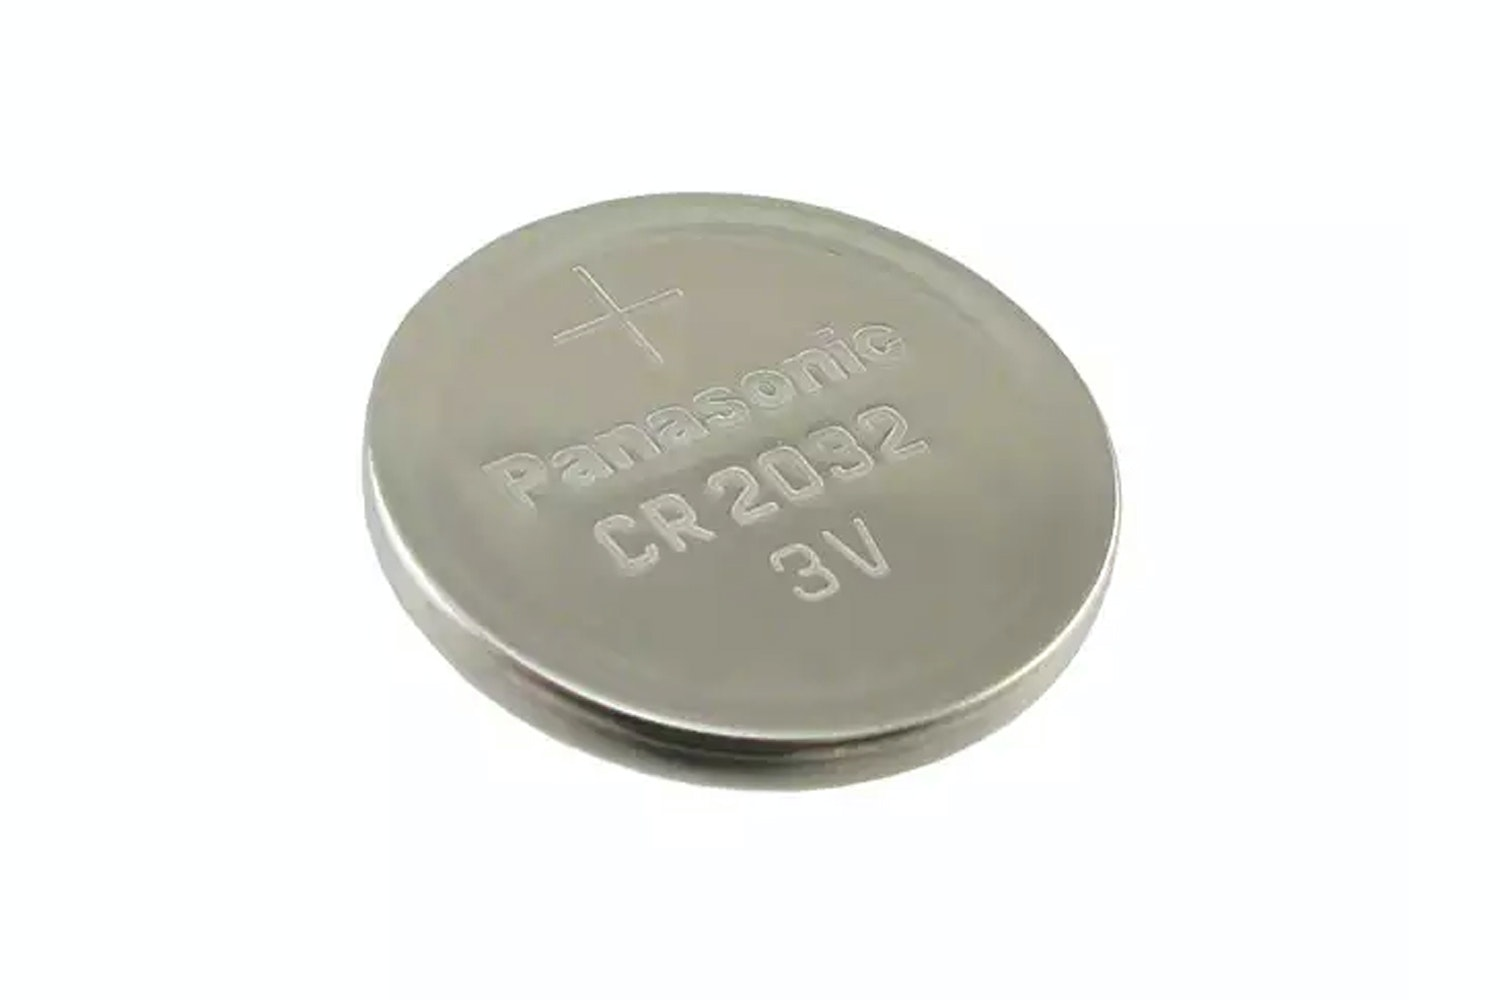 Panasonic Coin Cell Battery | CR2032